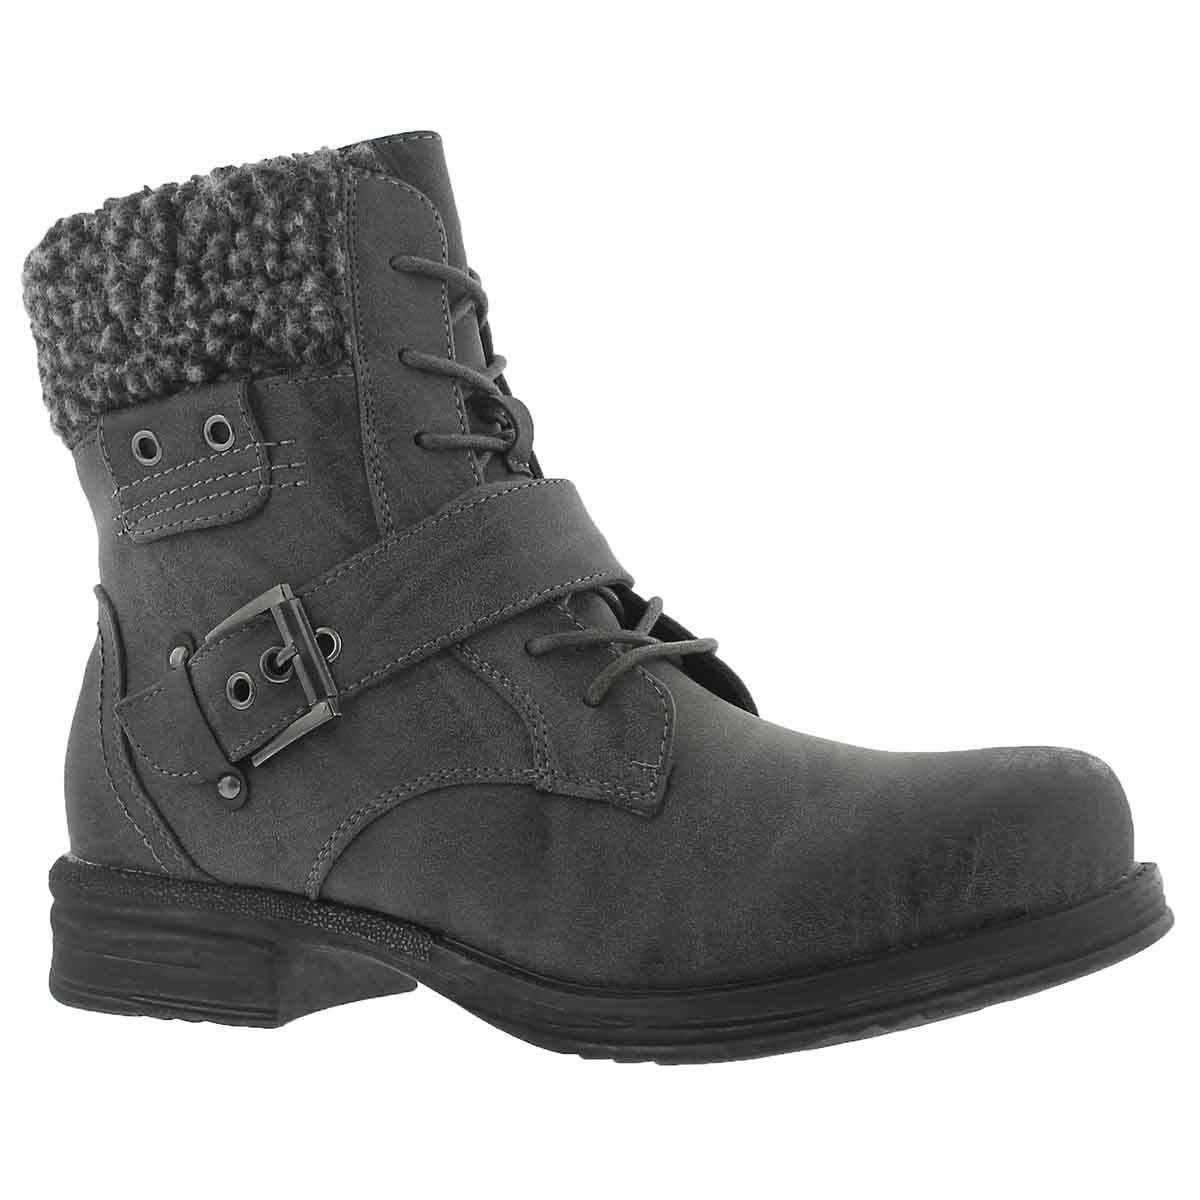 Women's KIARA 2 grey lace up casual boots